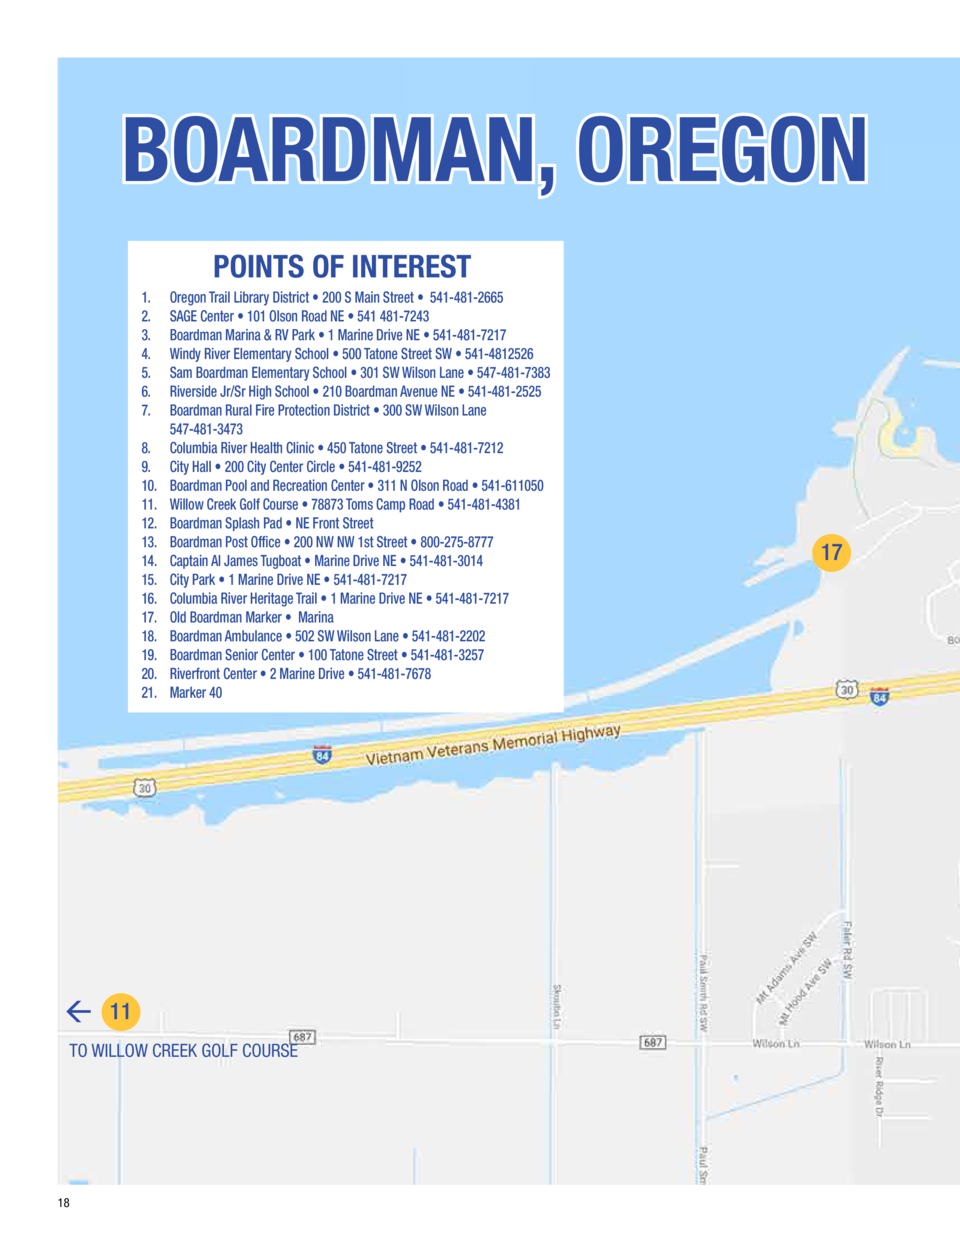 21  BOARDMAN, OREGON  20  14  POINTS OF INTEREST 1. 2. 3. 4. 5. 6. 7. 8. 9. 10. 11. 12. 13. 14. 15. 16. 17. 18. 19. 20. 21...